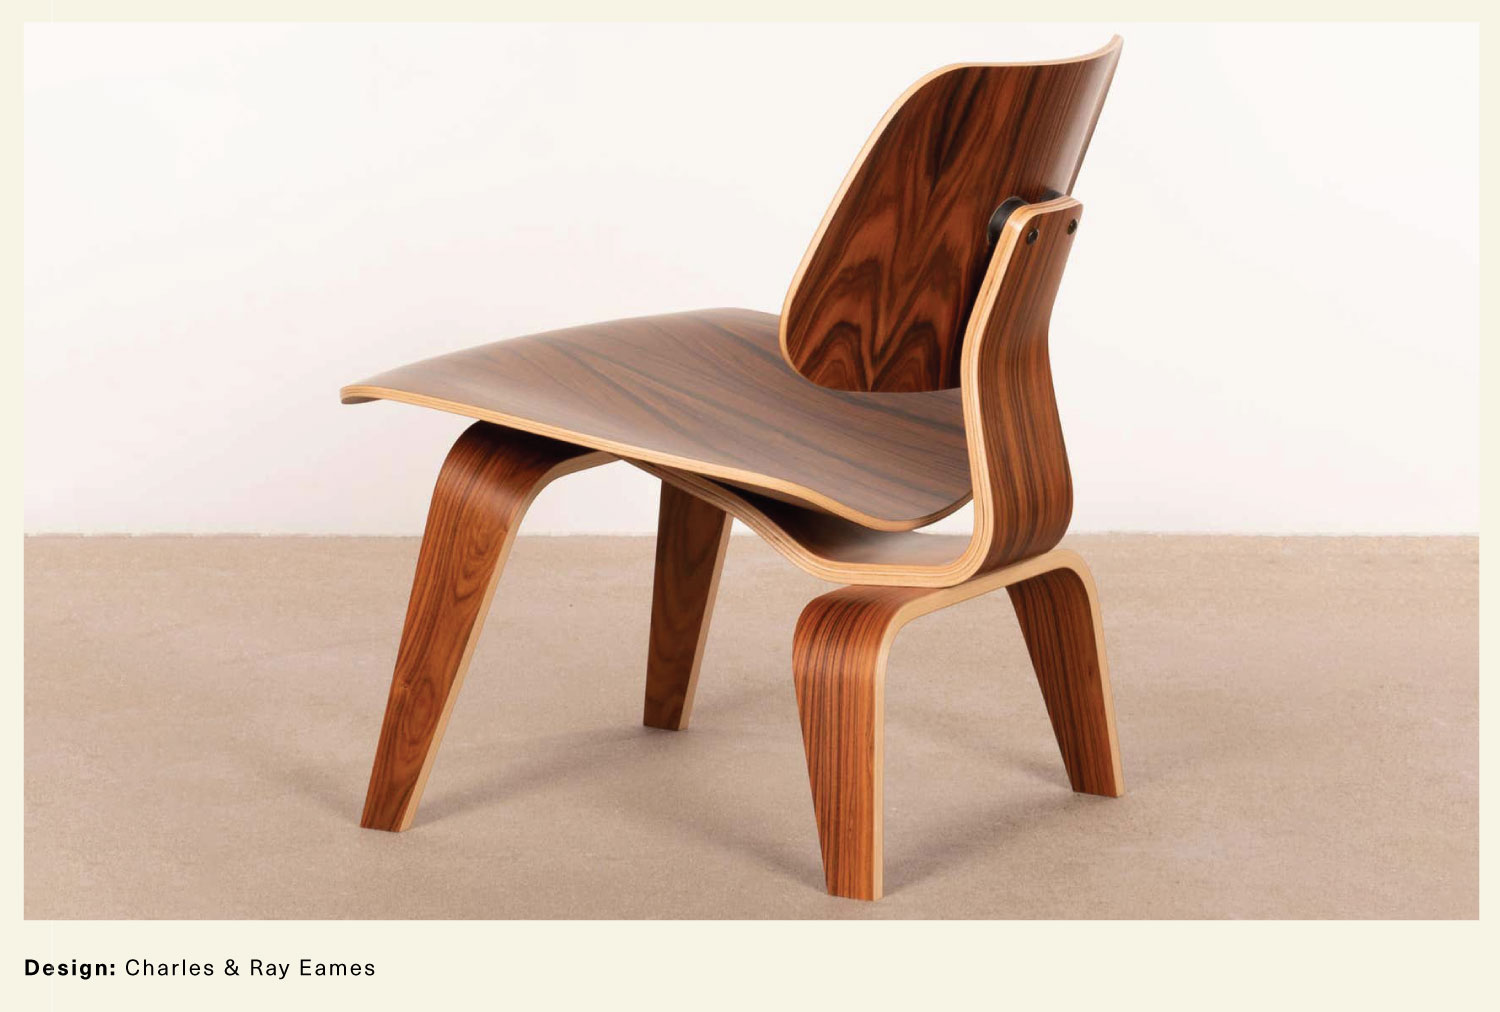 Charles & Ray Eames LCW chair